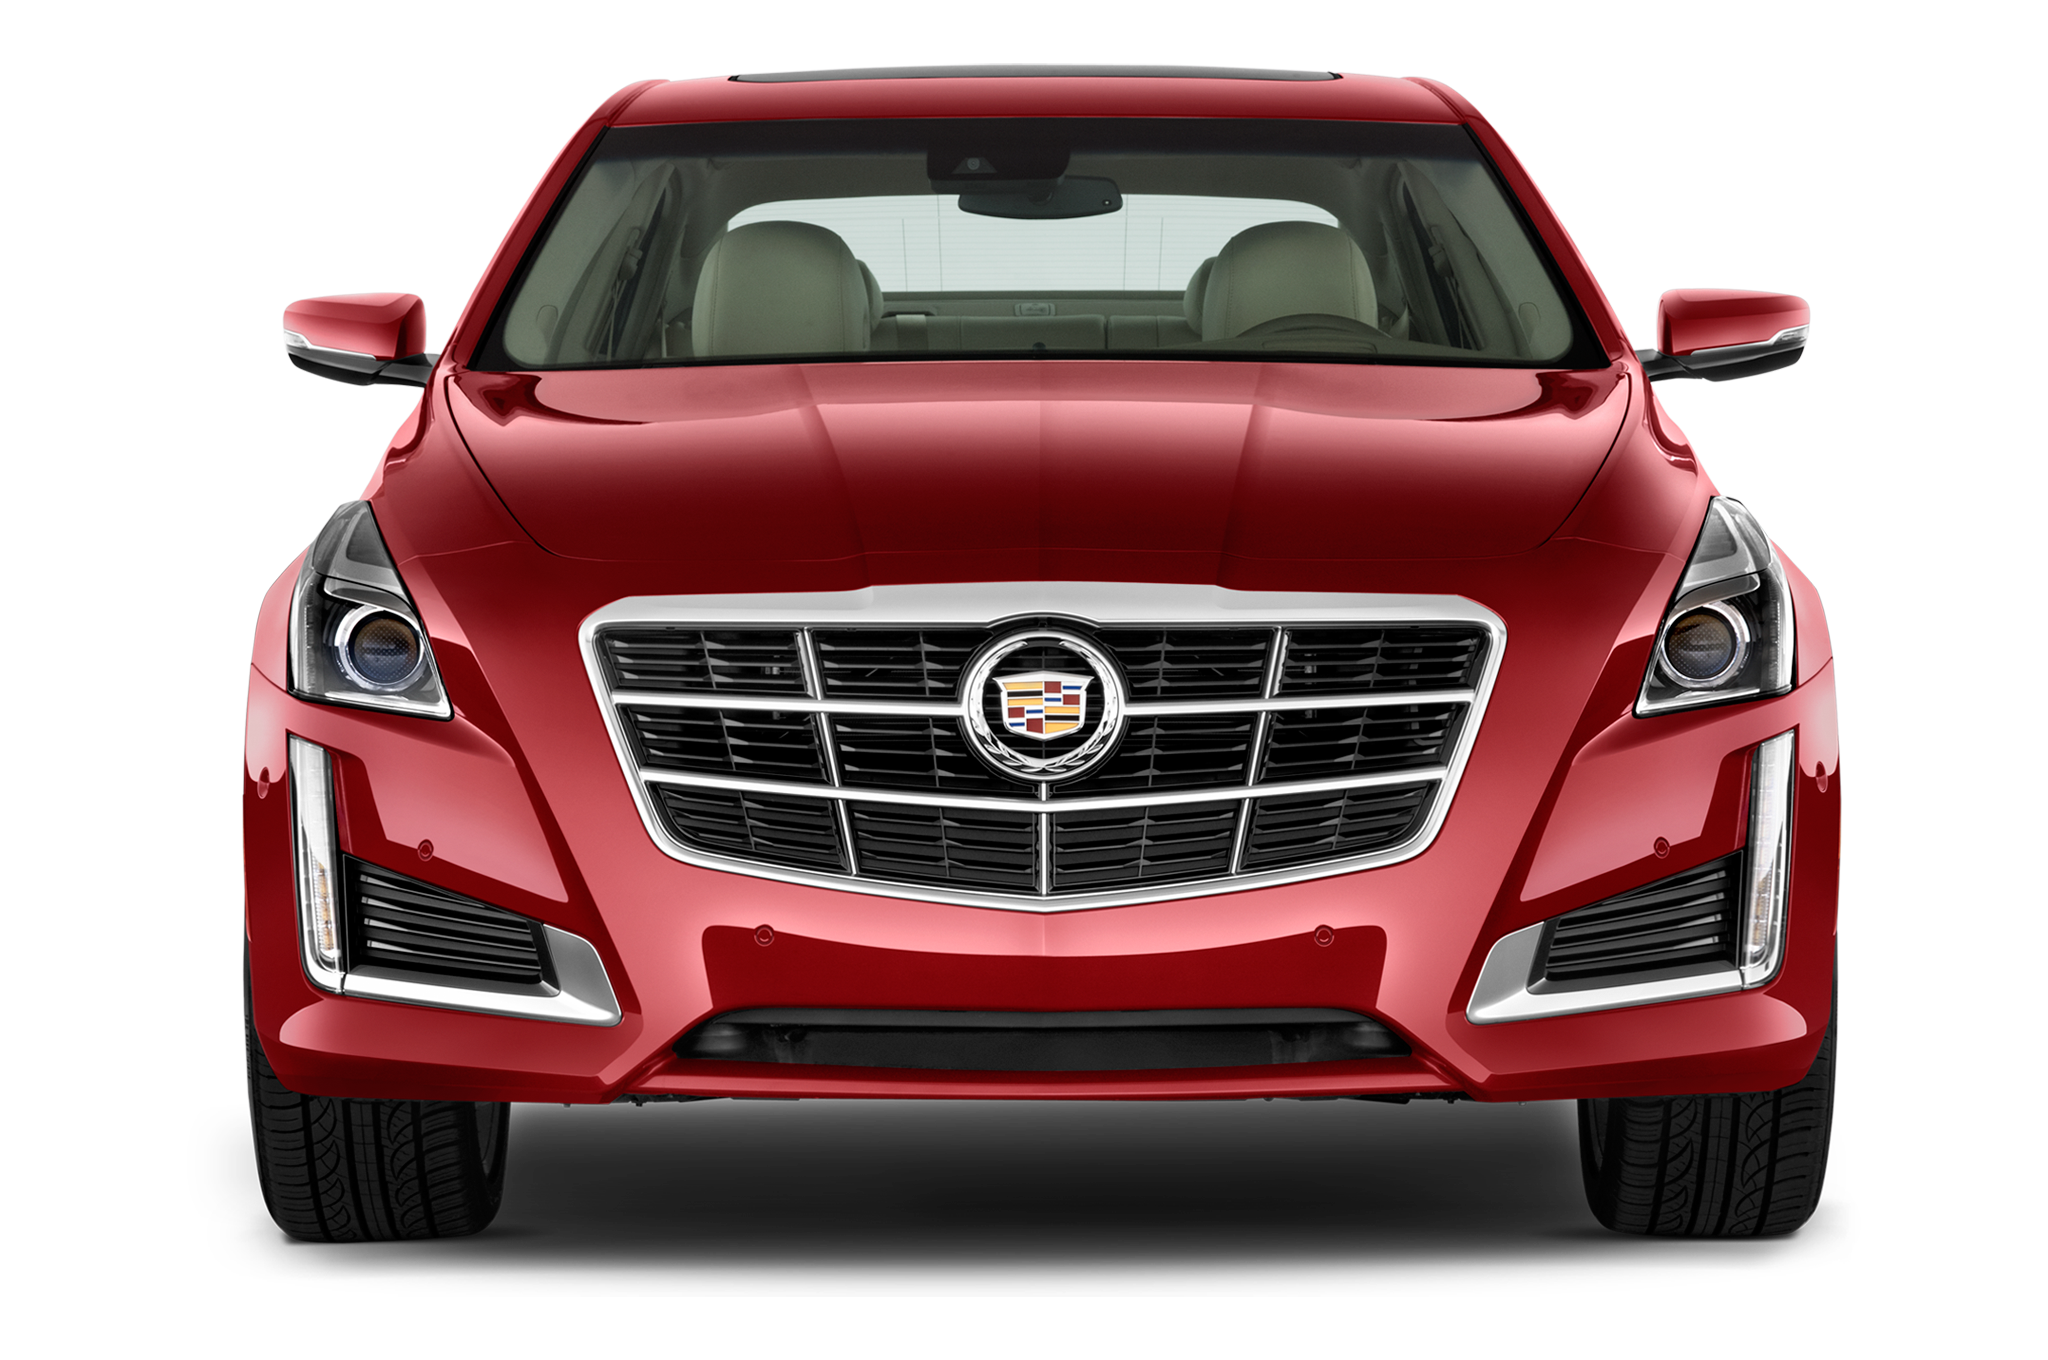 Cadillac crown clipart clipart library download Cadillac cars PNG images free download clipart library download